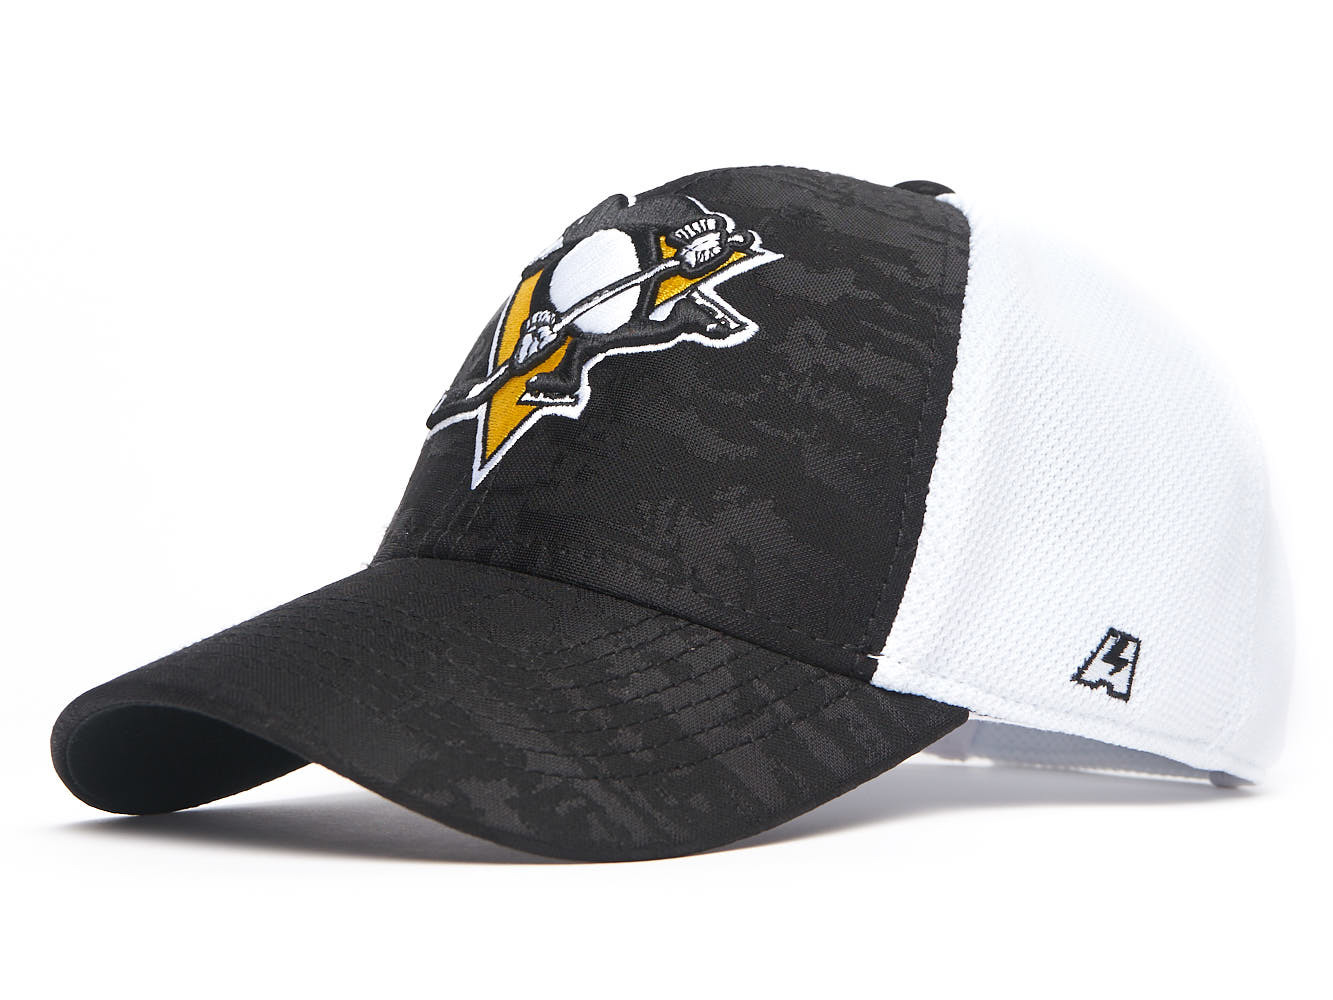 Бейсболка NHL Pittsburgh Penguins (размер L)